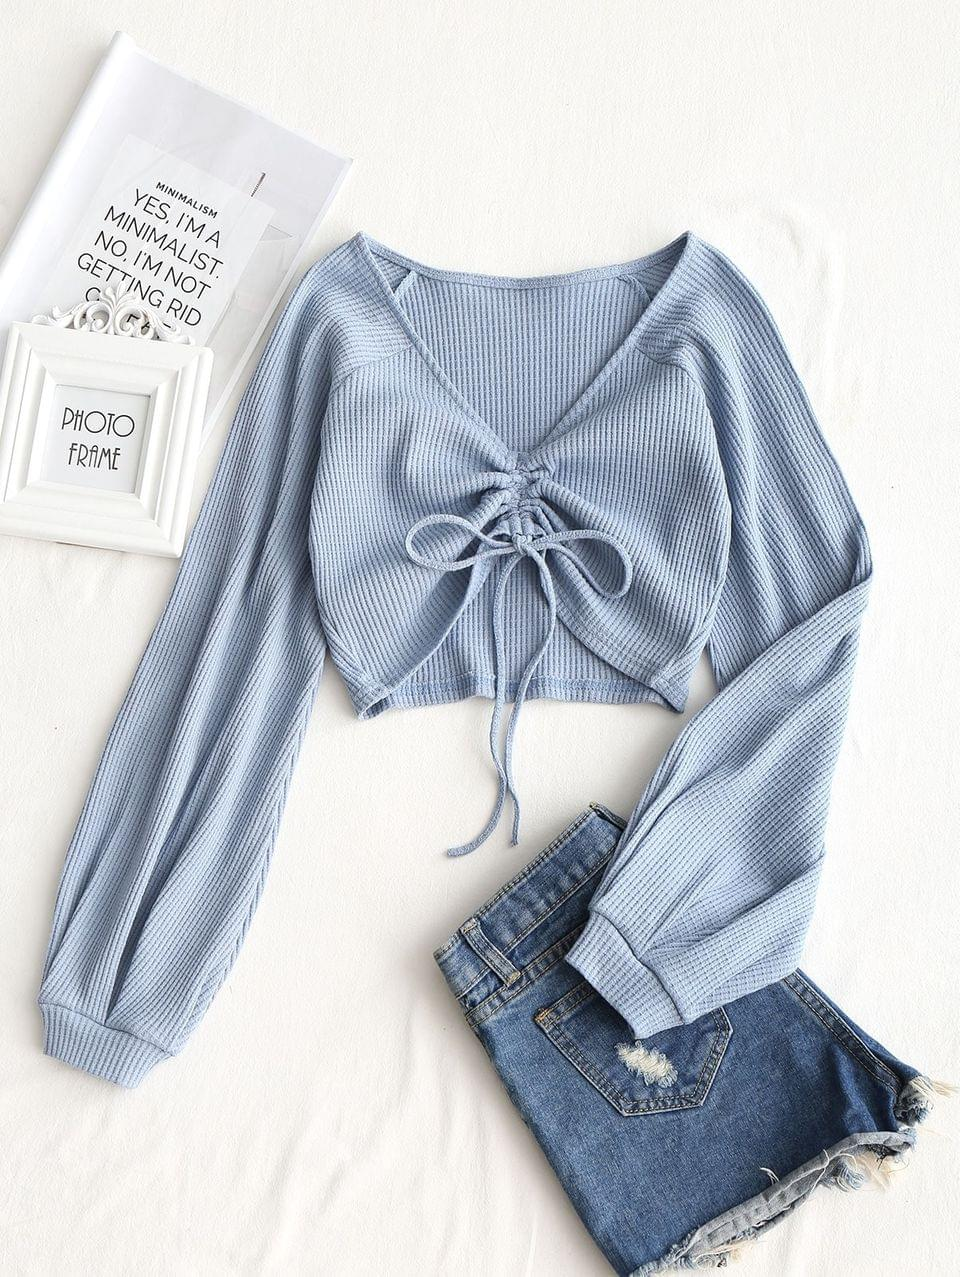 Women's Textured Knitted Gathered Top - Grey Blue S